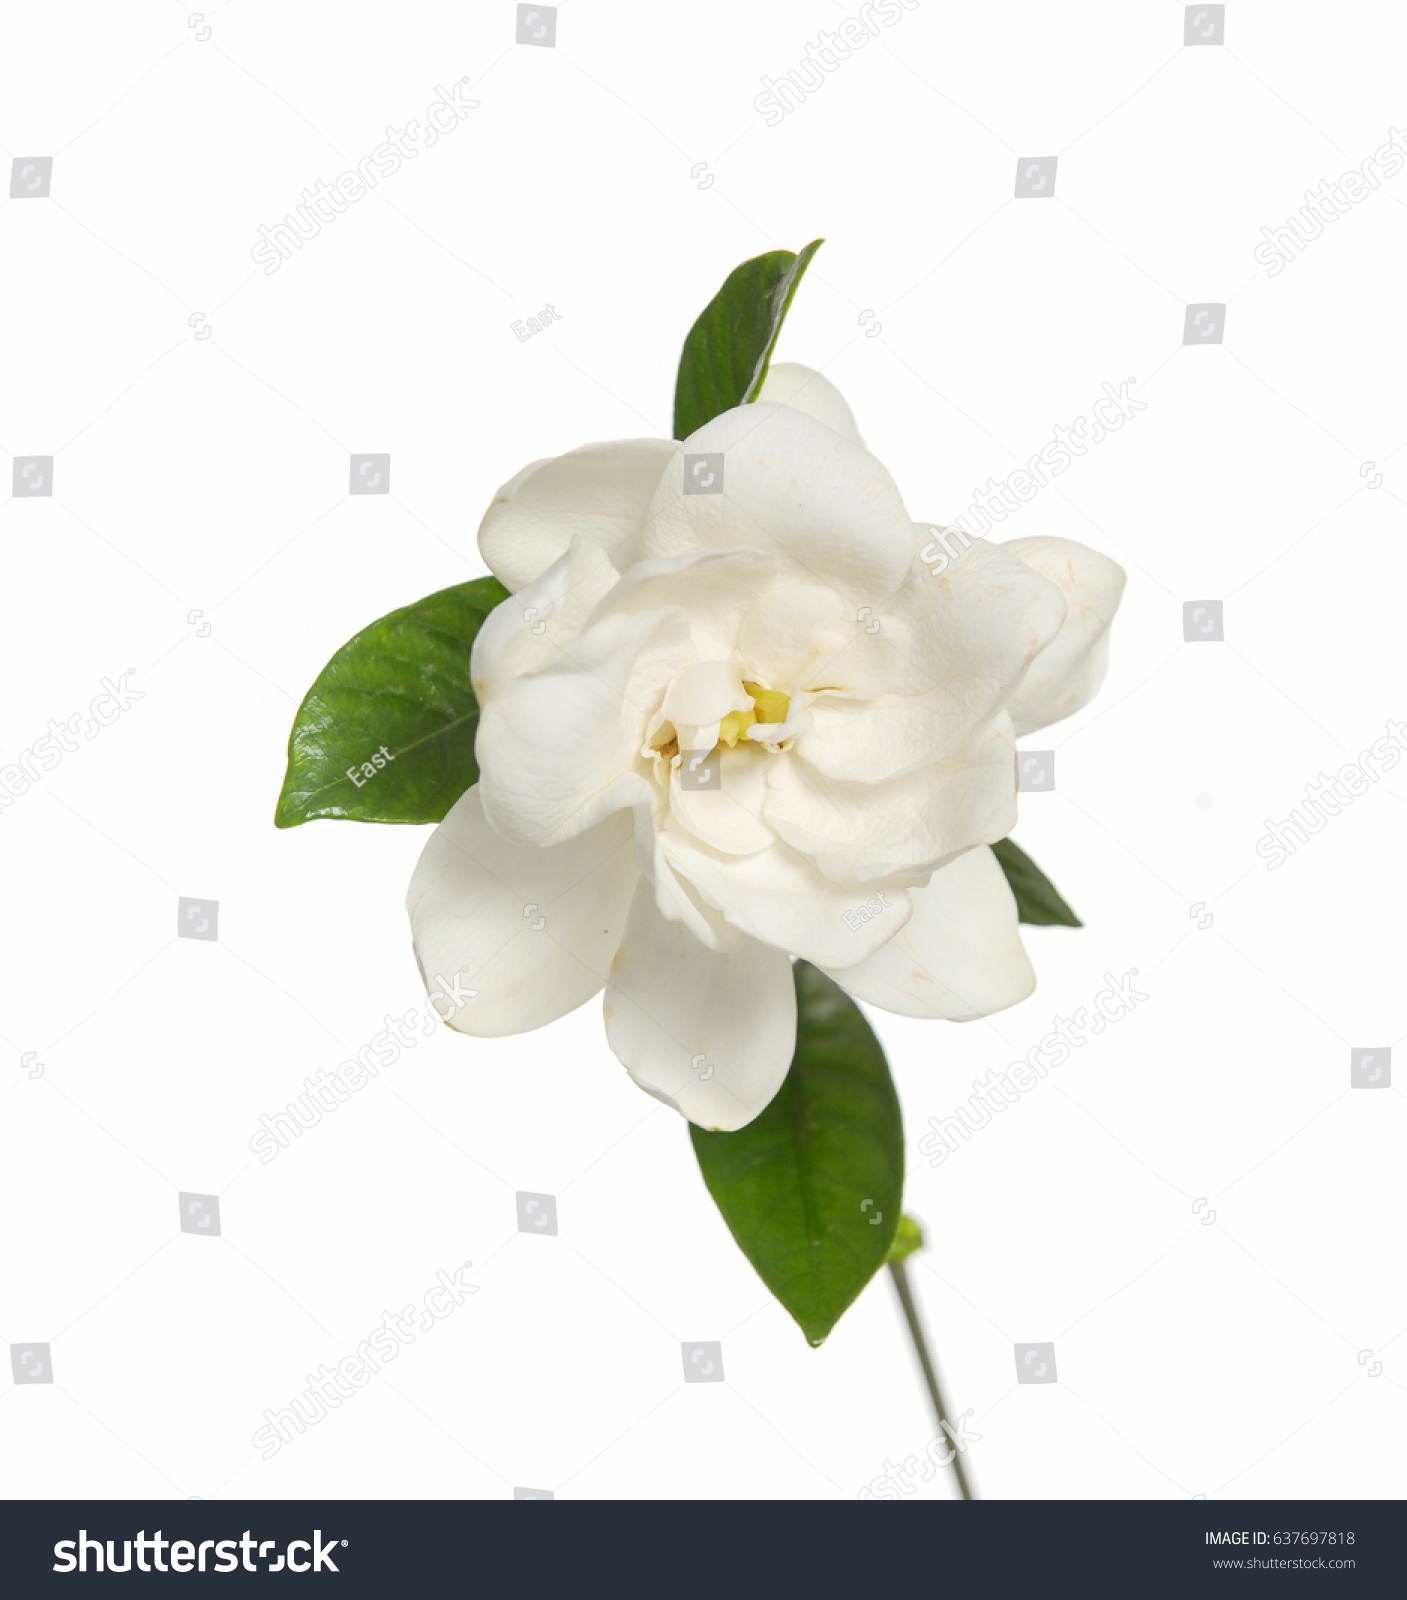 Gardenia Jasminoides Cape Jasmine Flower Stock Photo Edit Now